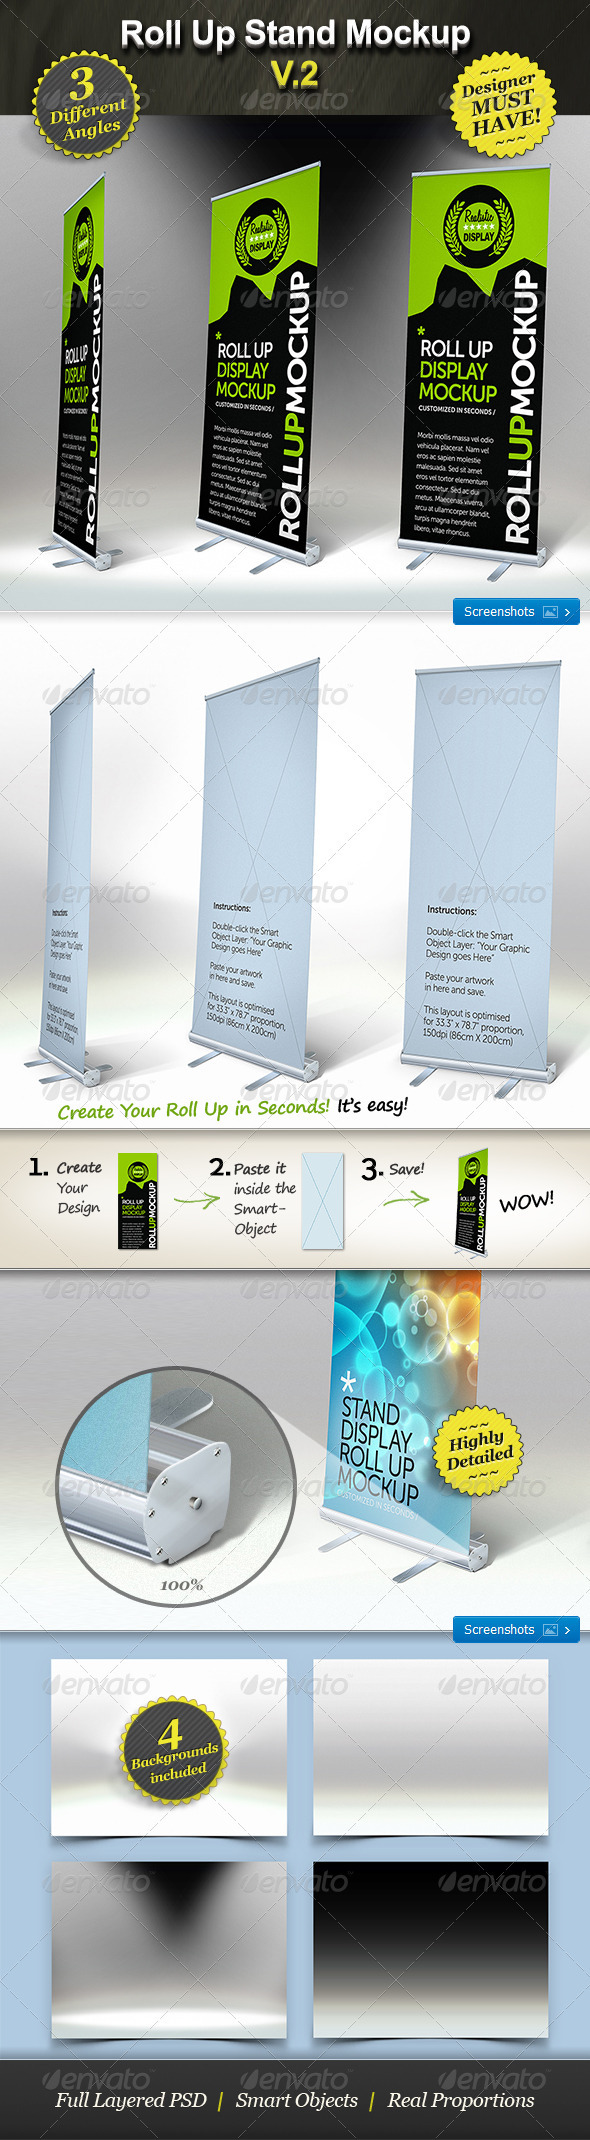 Roll Up Stand Mockup - Smart Template Display - Signage Print